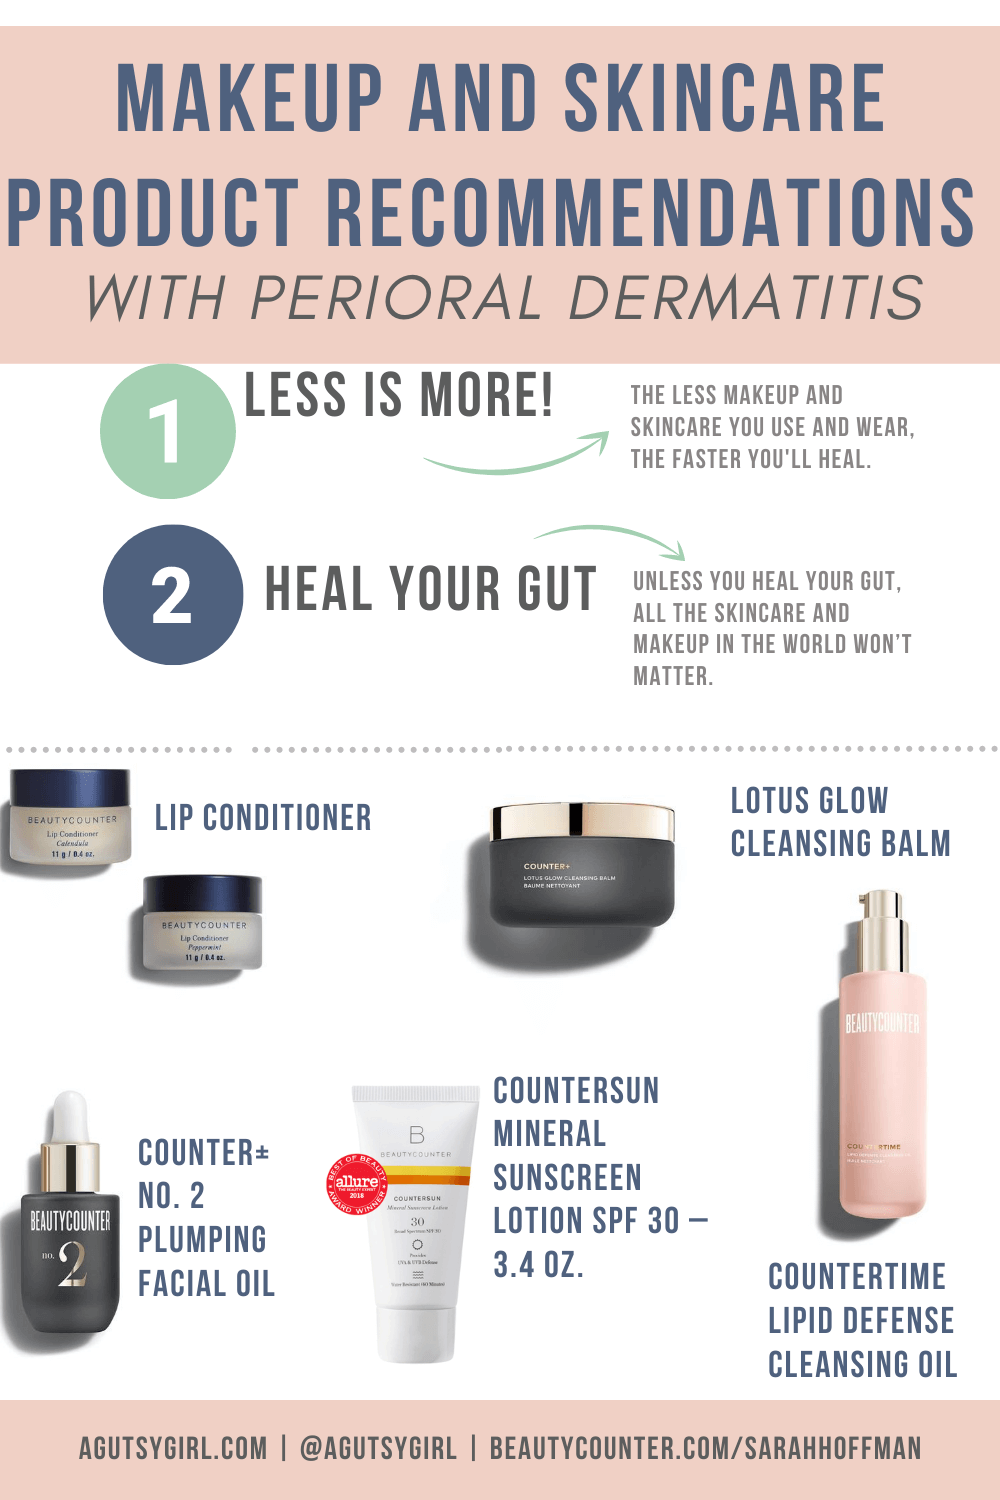 Skincare and Makeup in Leaky Gut Associated Dermatitis products to use agutsygirl.com #skincare #acne #makeup #perioraldermatitis